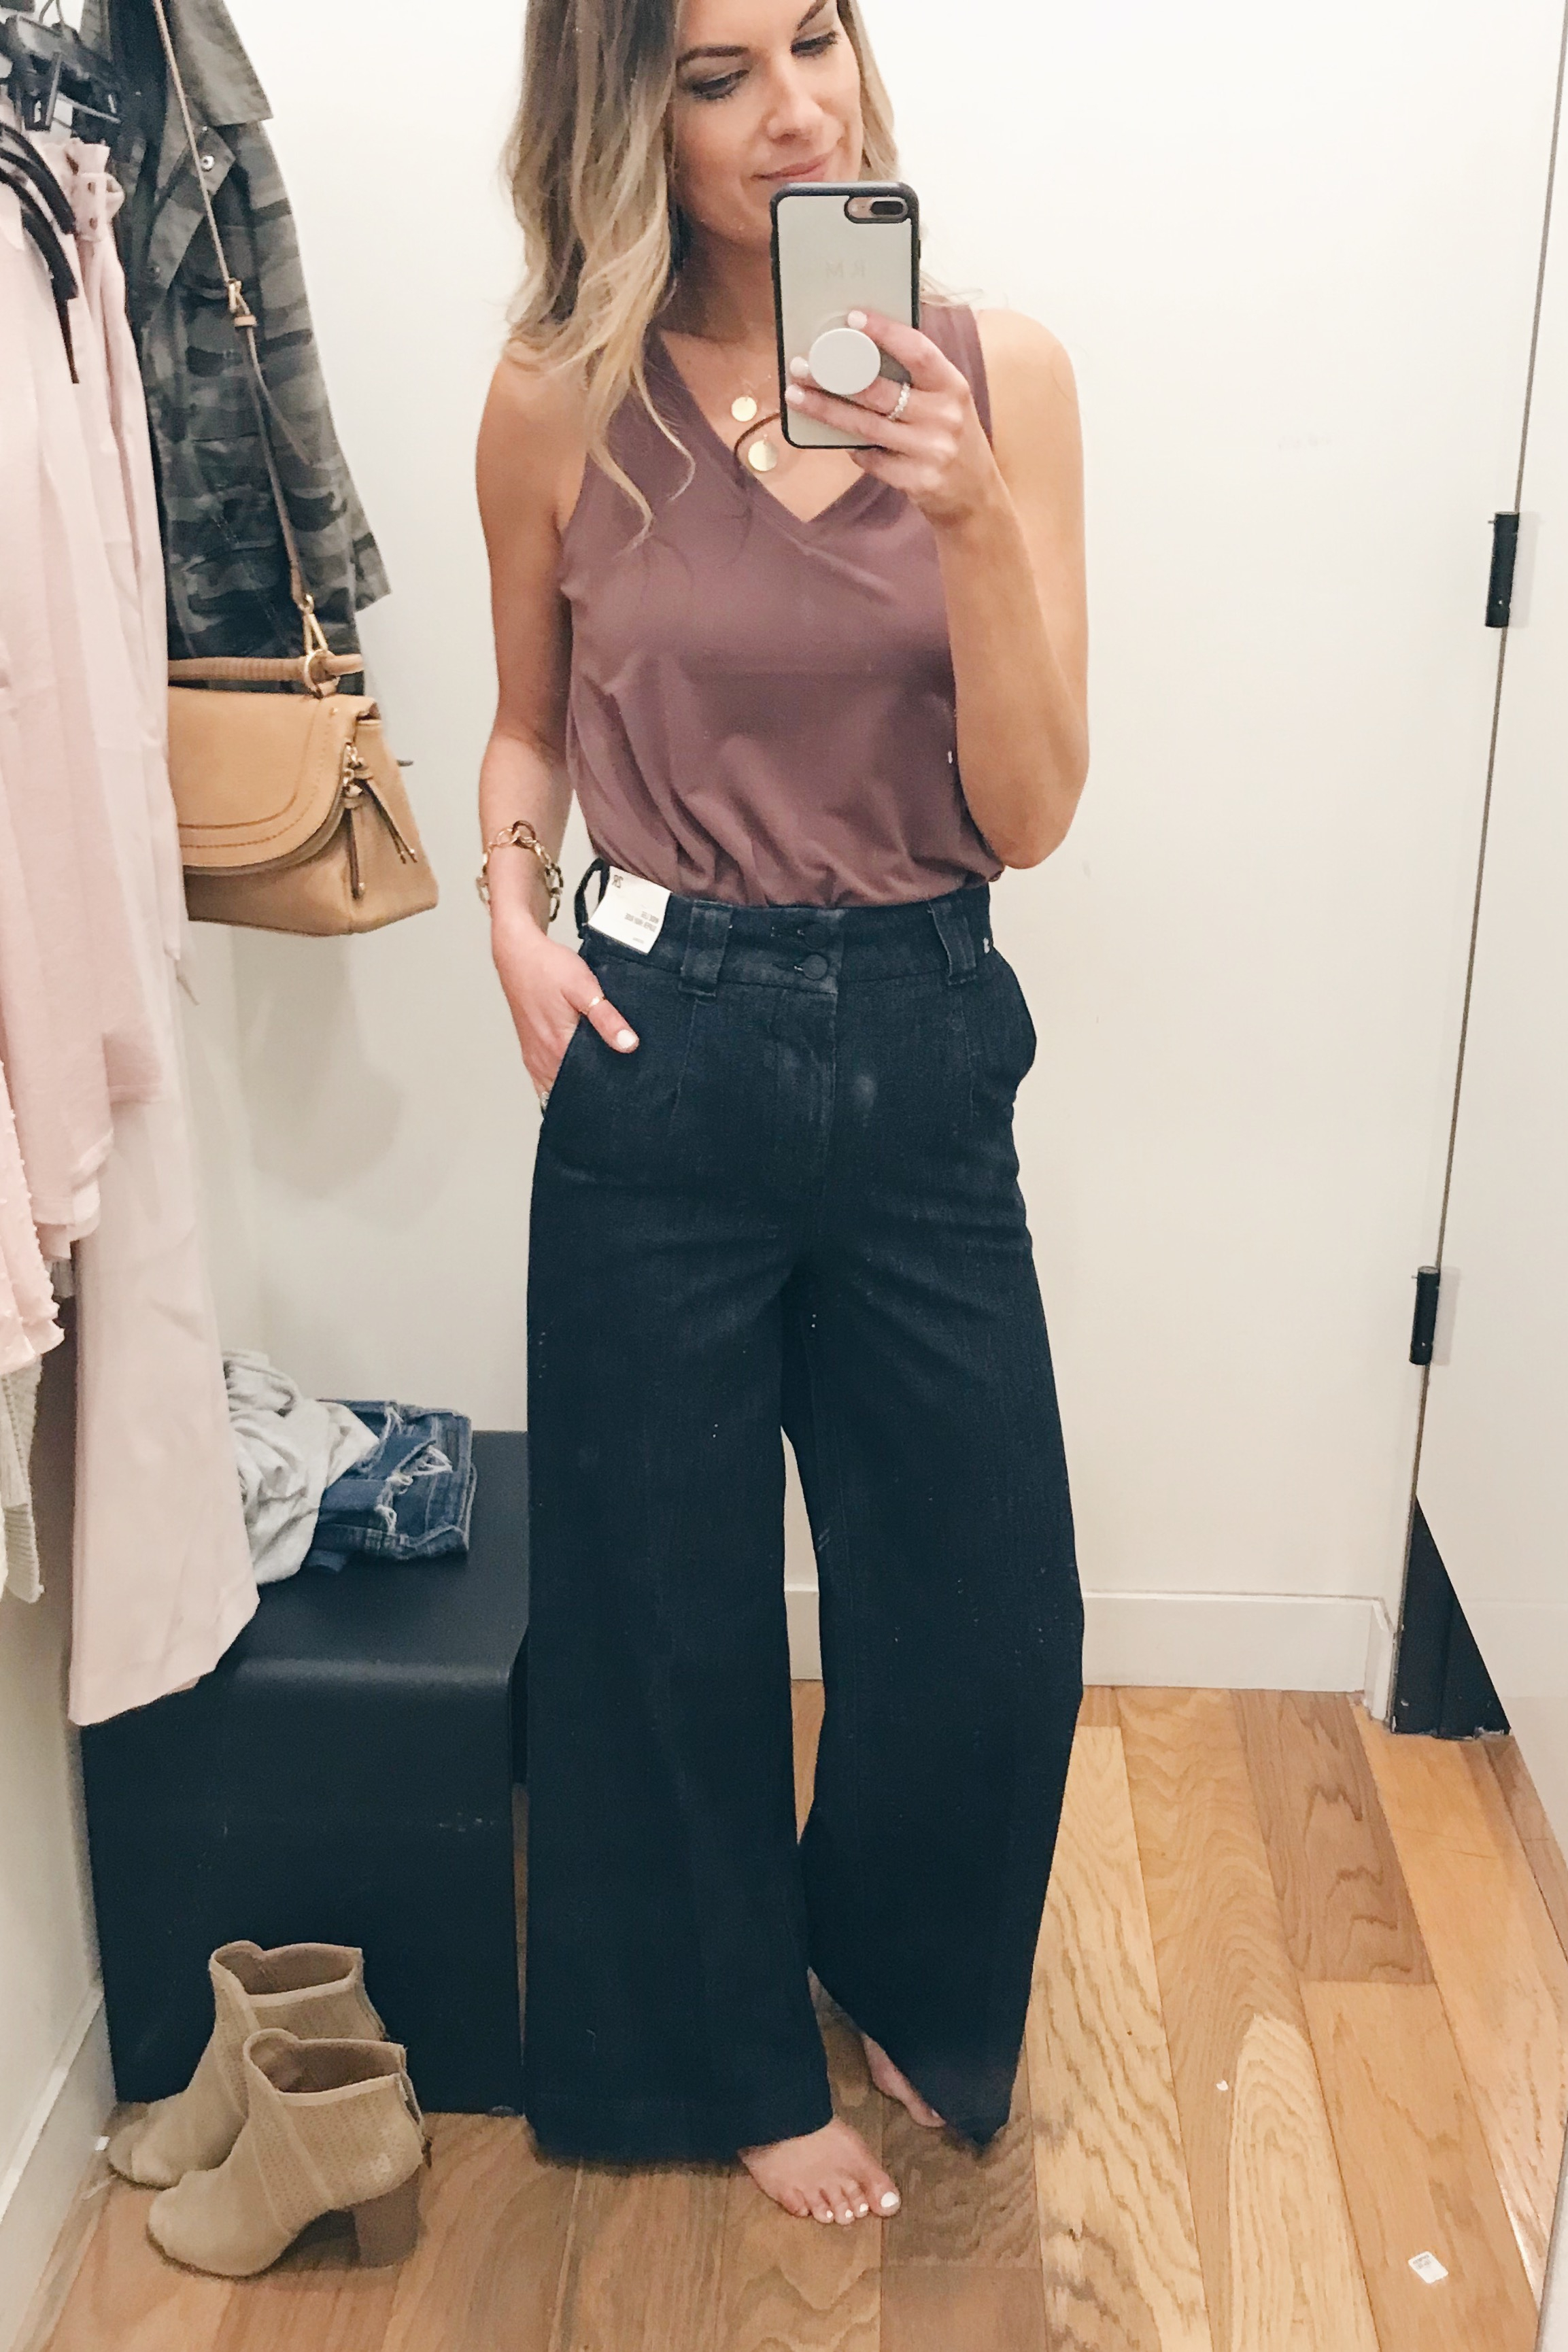 express march 2019 try-on - wide leg jeans and mauve tank on Pinteresting Plans fashion blog